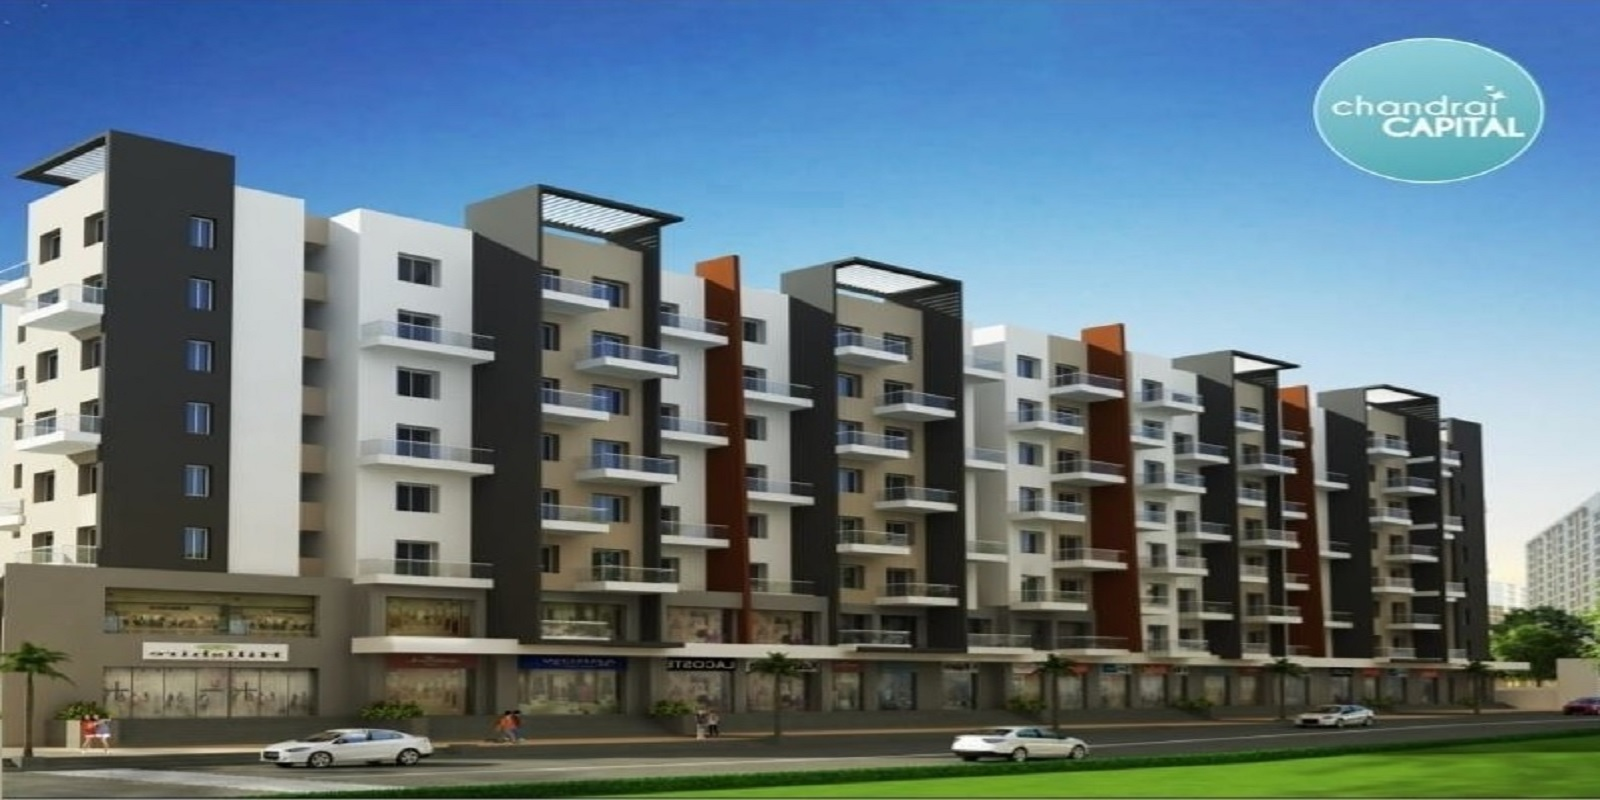 sbs chandrai capital project project large image1